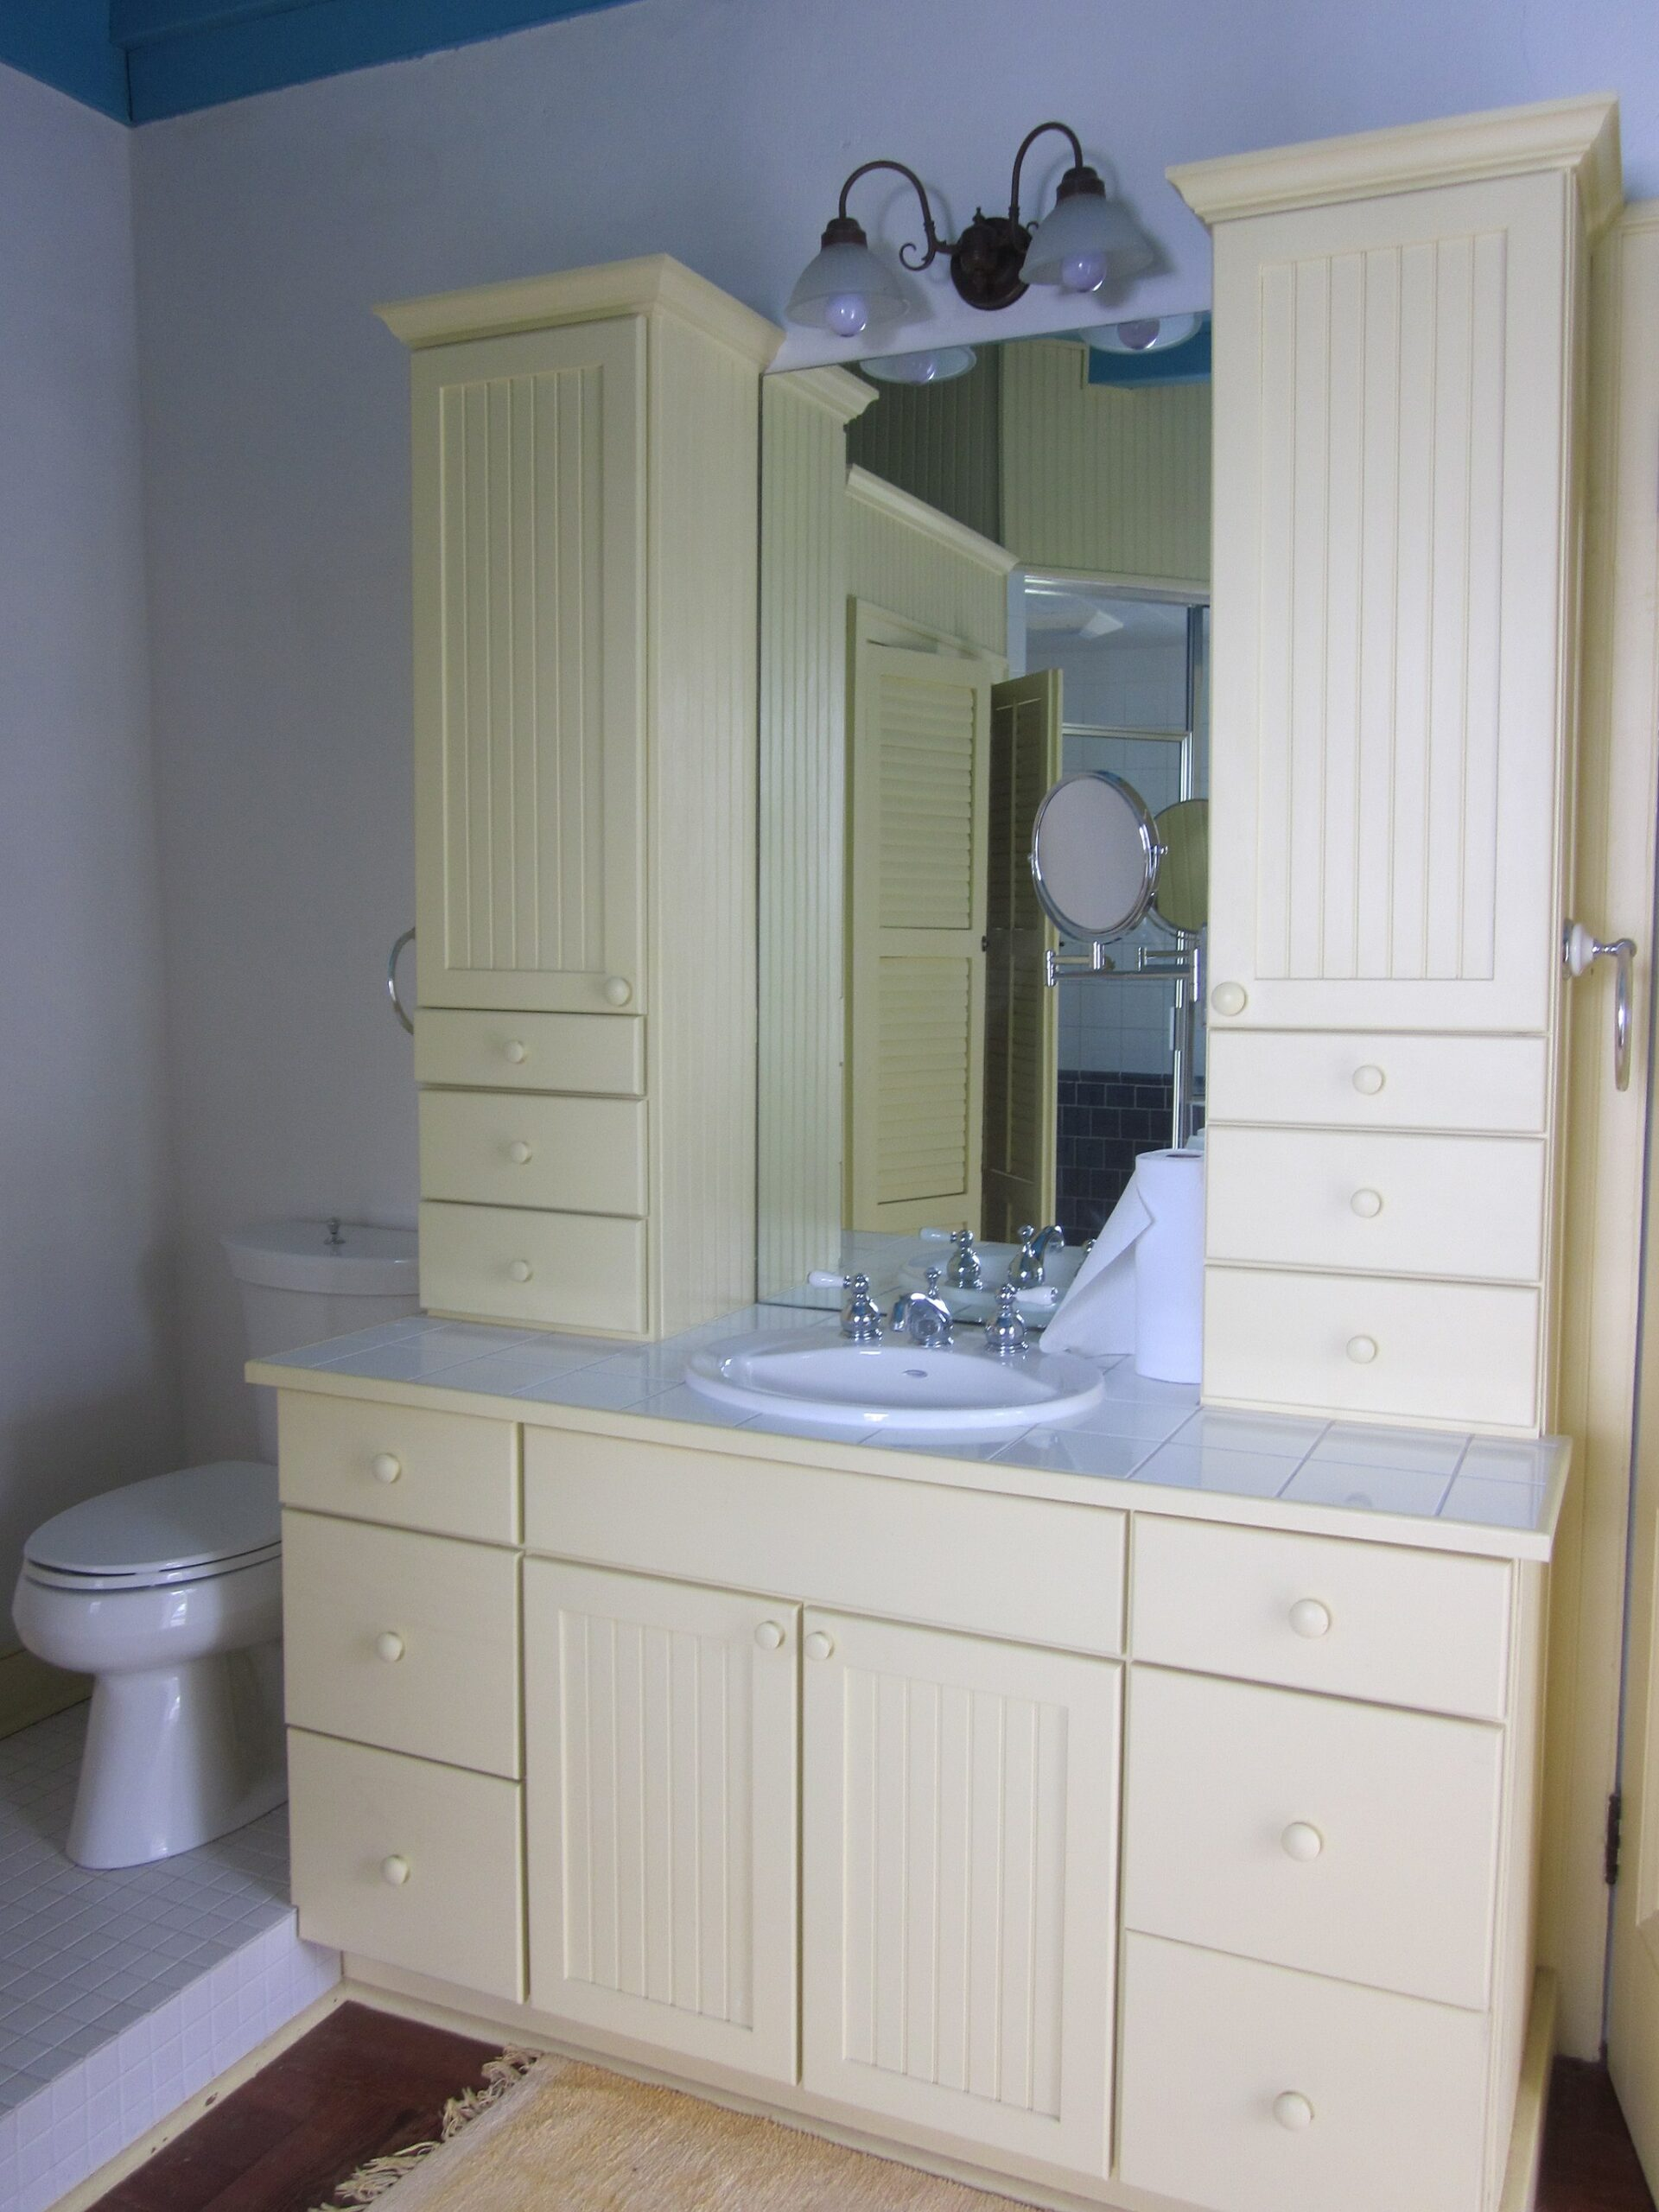 How to buy a bathroom vanity